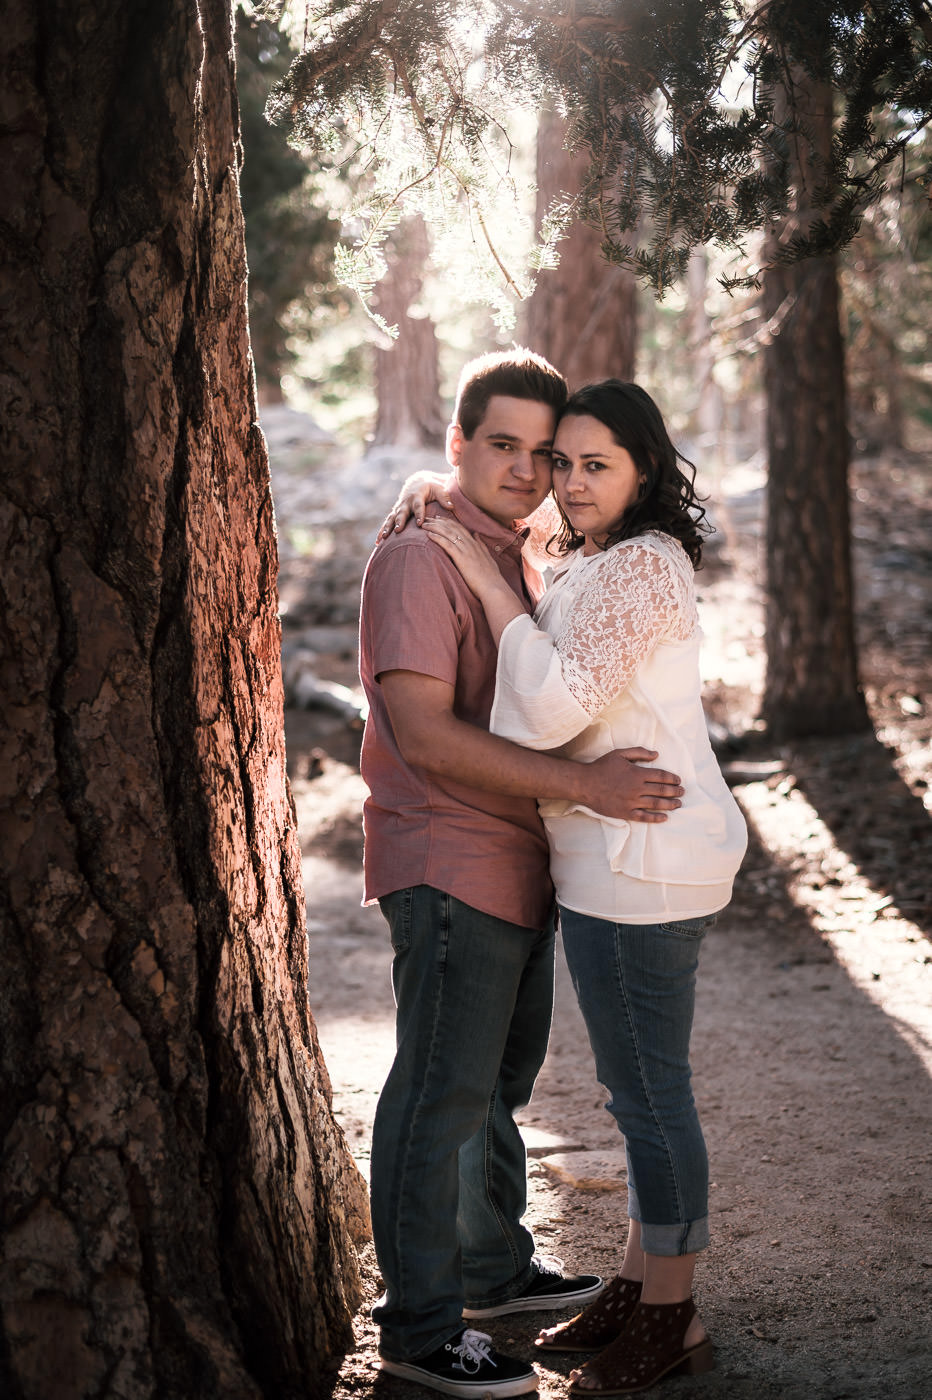 Engagement photos out in the beauty of nature in Mt San Jacinto.